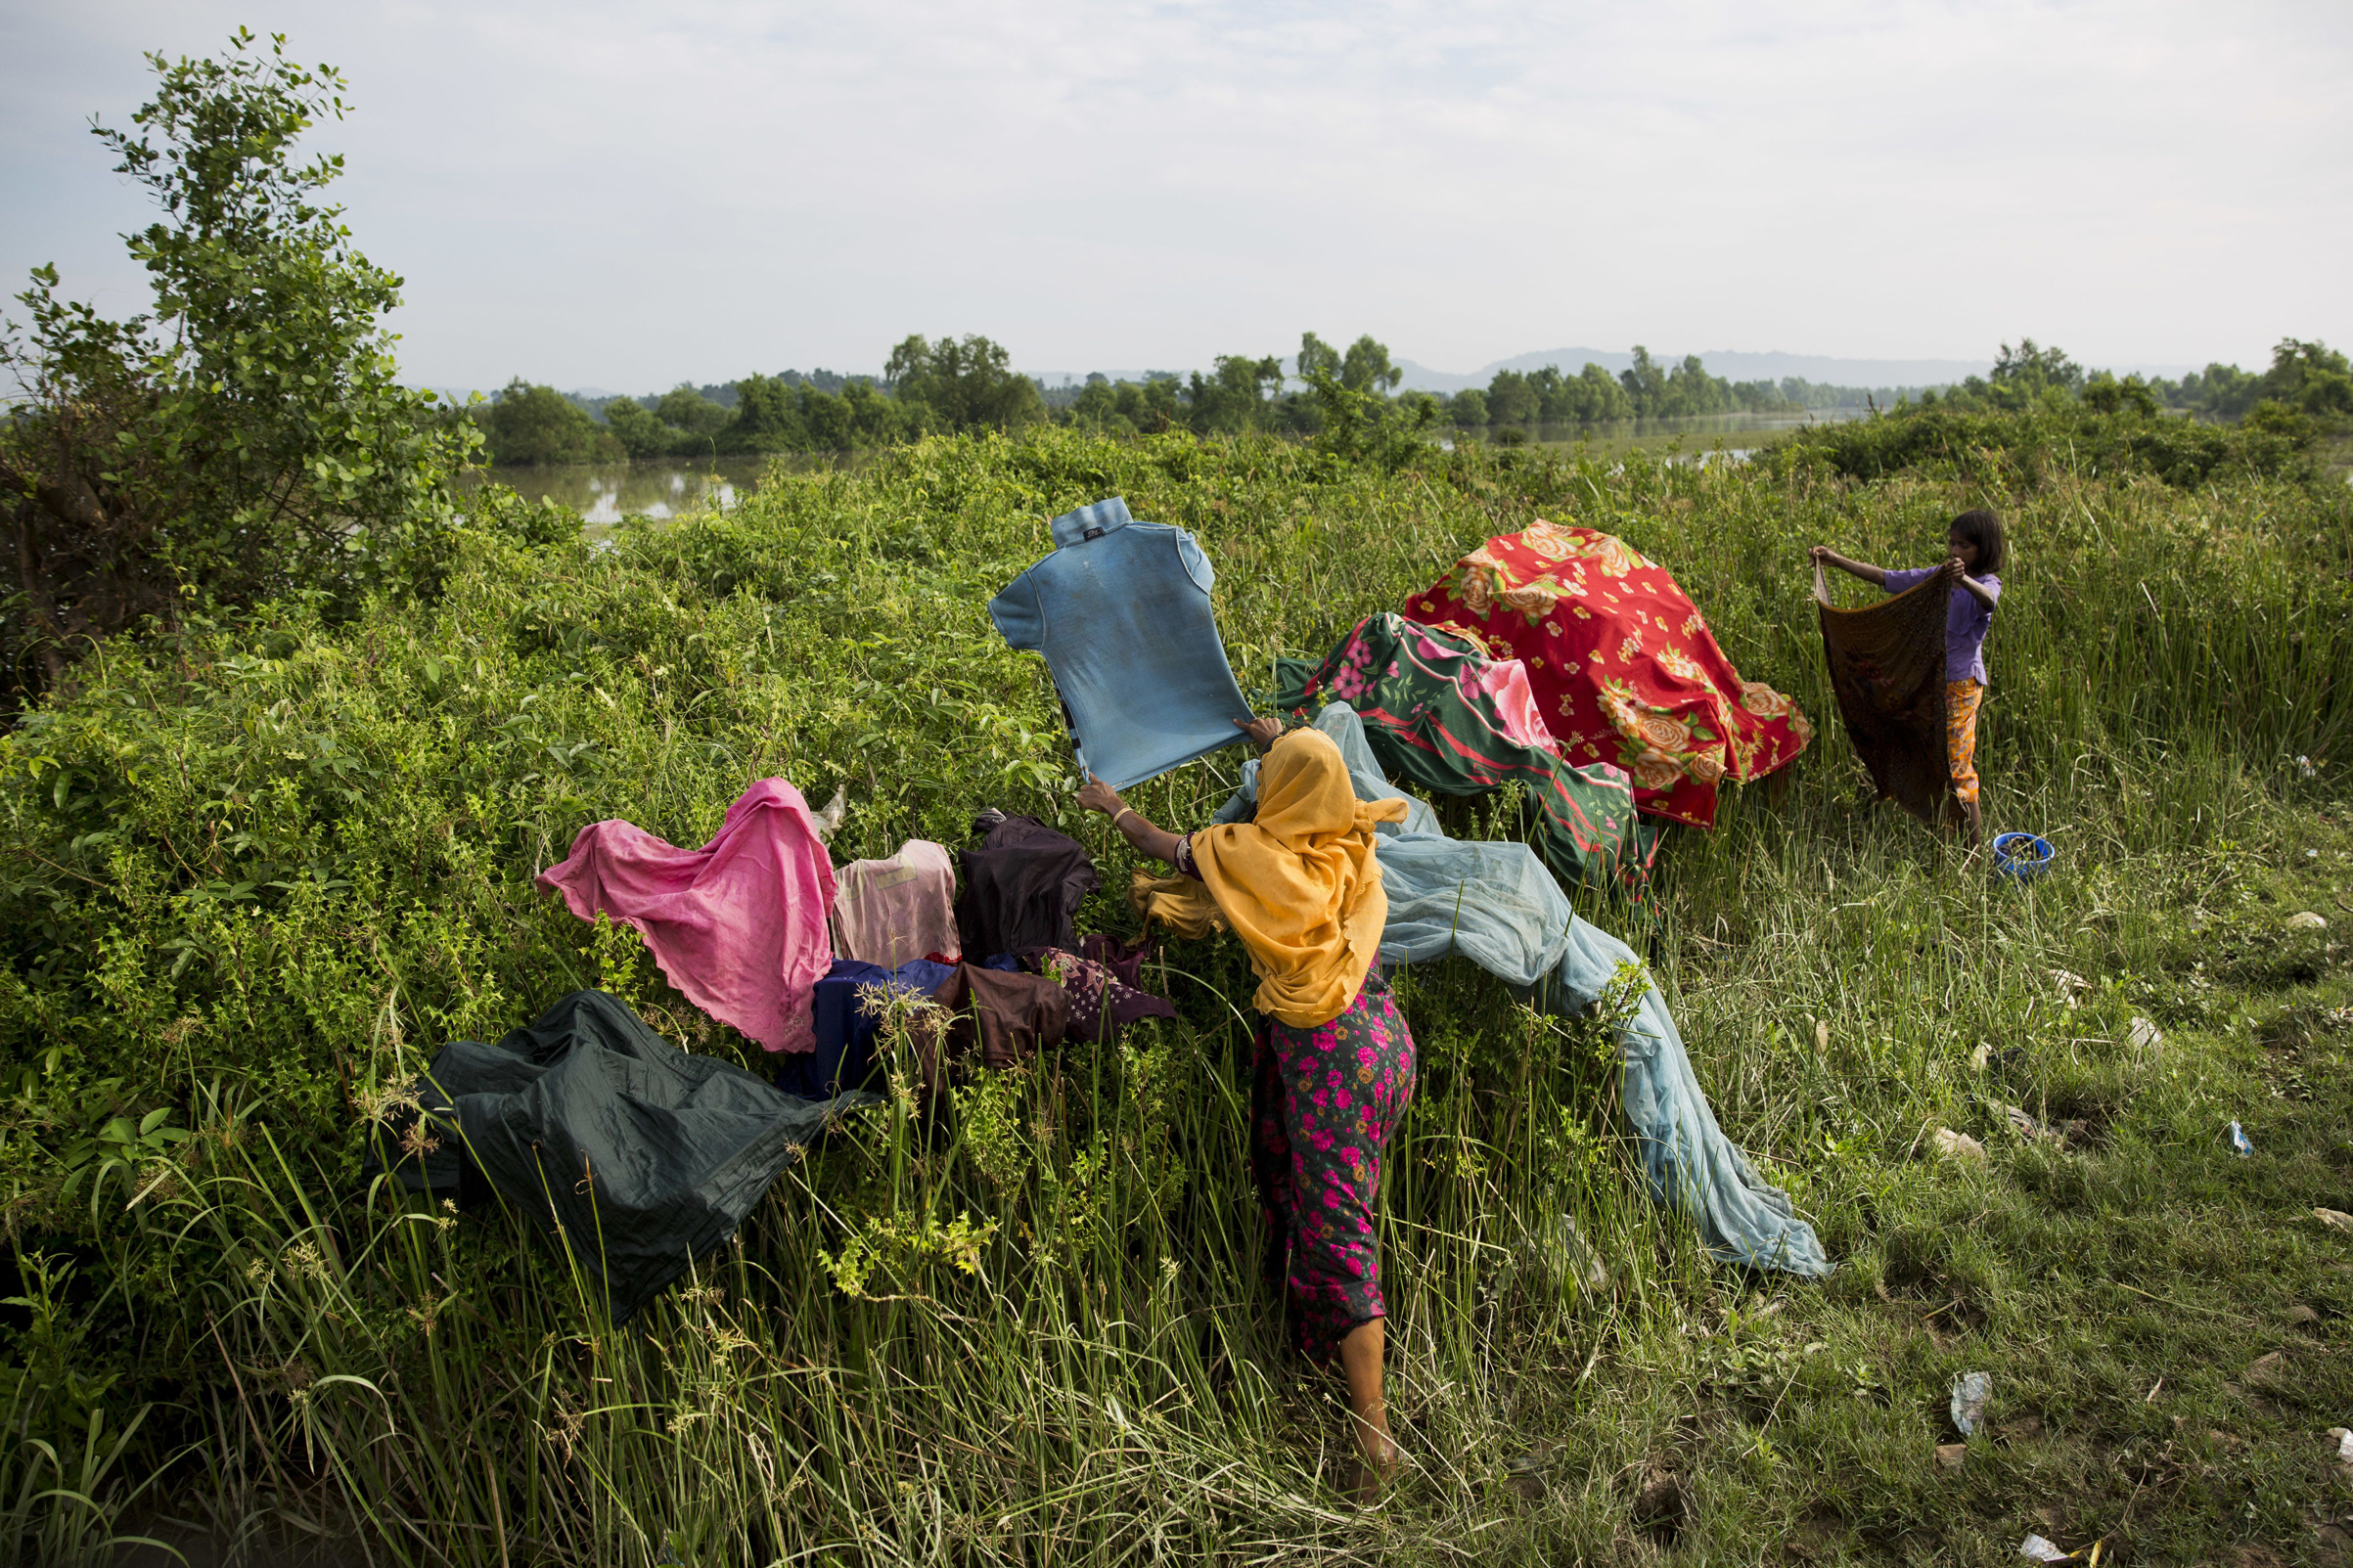 Rohingya dry their clothes as they wait along the border after crossing the Naf River near Palong Khali, Bangladesh, on Nov. 2, 2017.